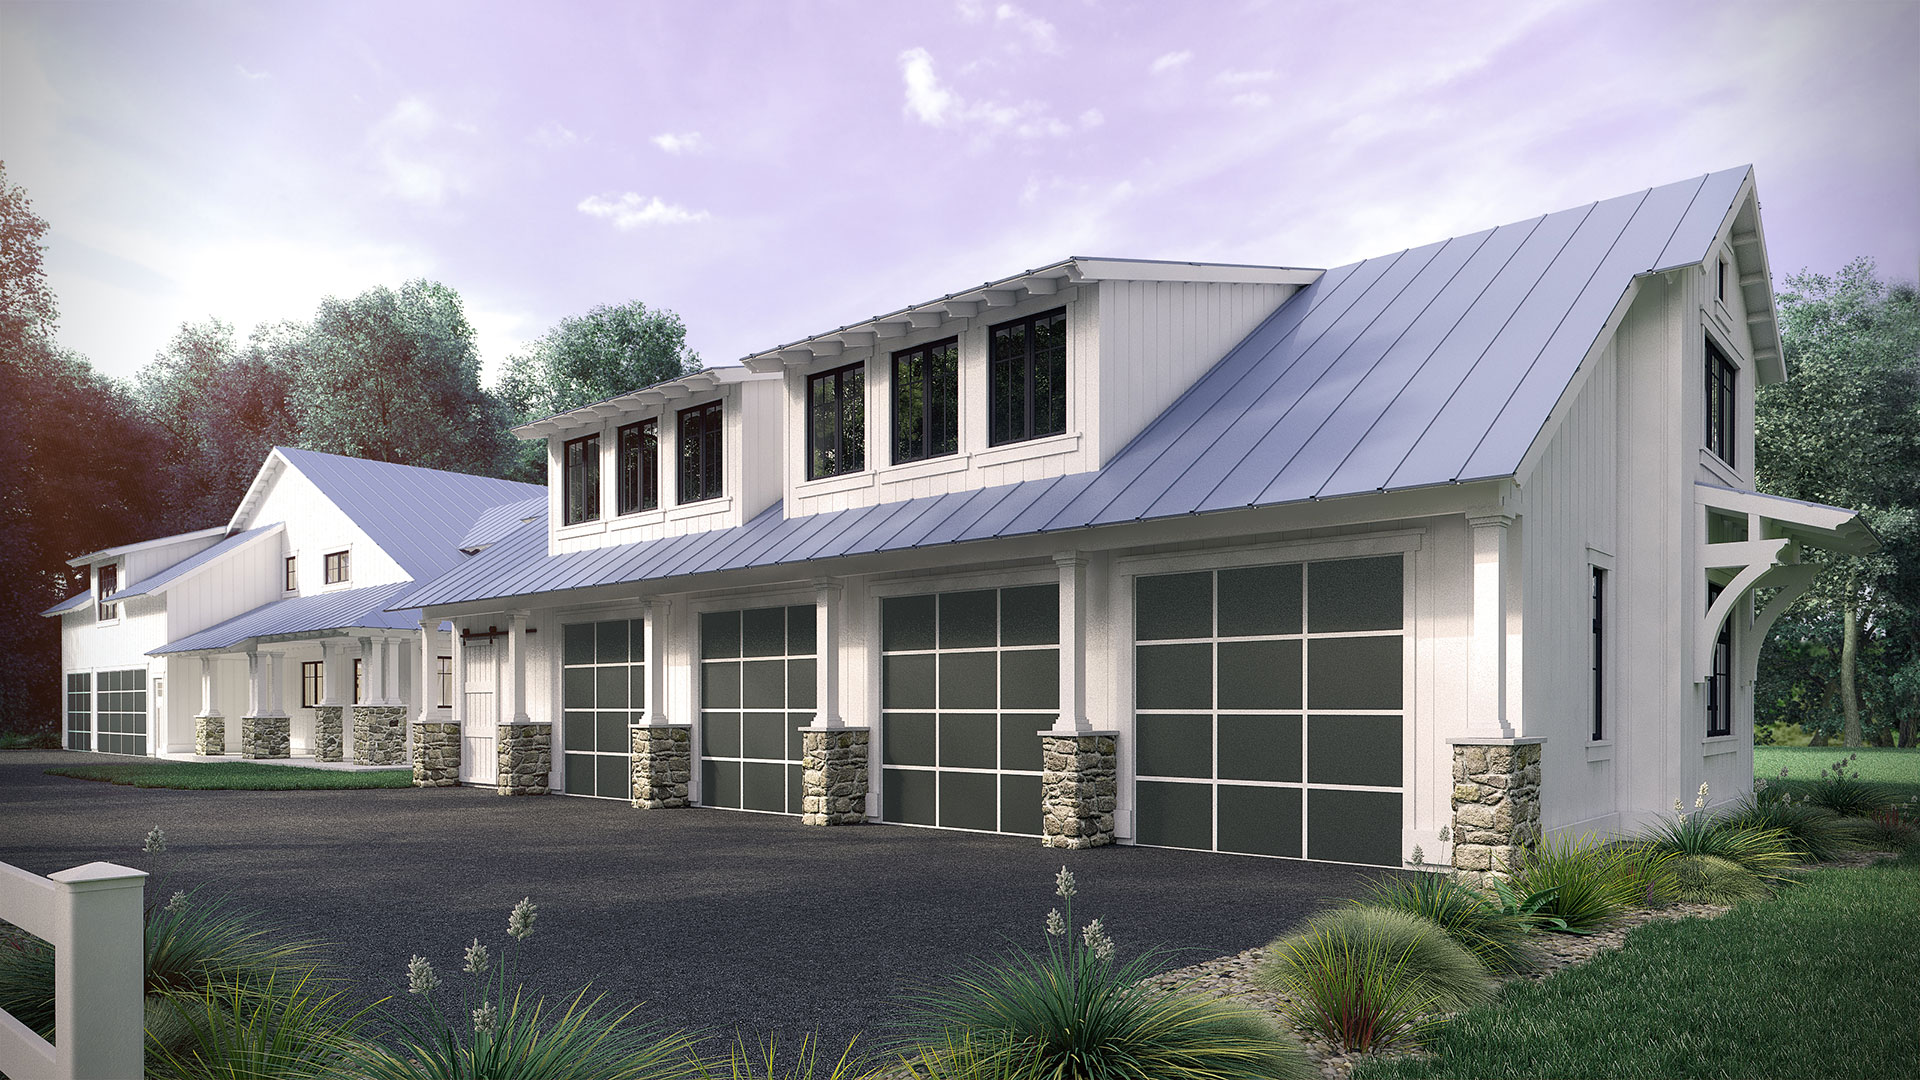 Driveway side of the Carriage House Architectural Rendering